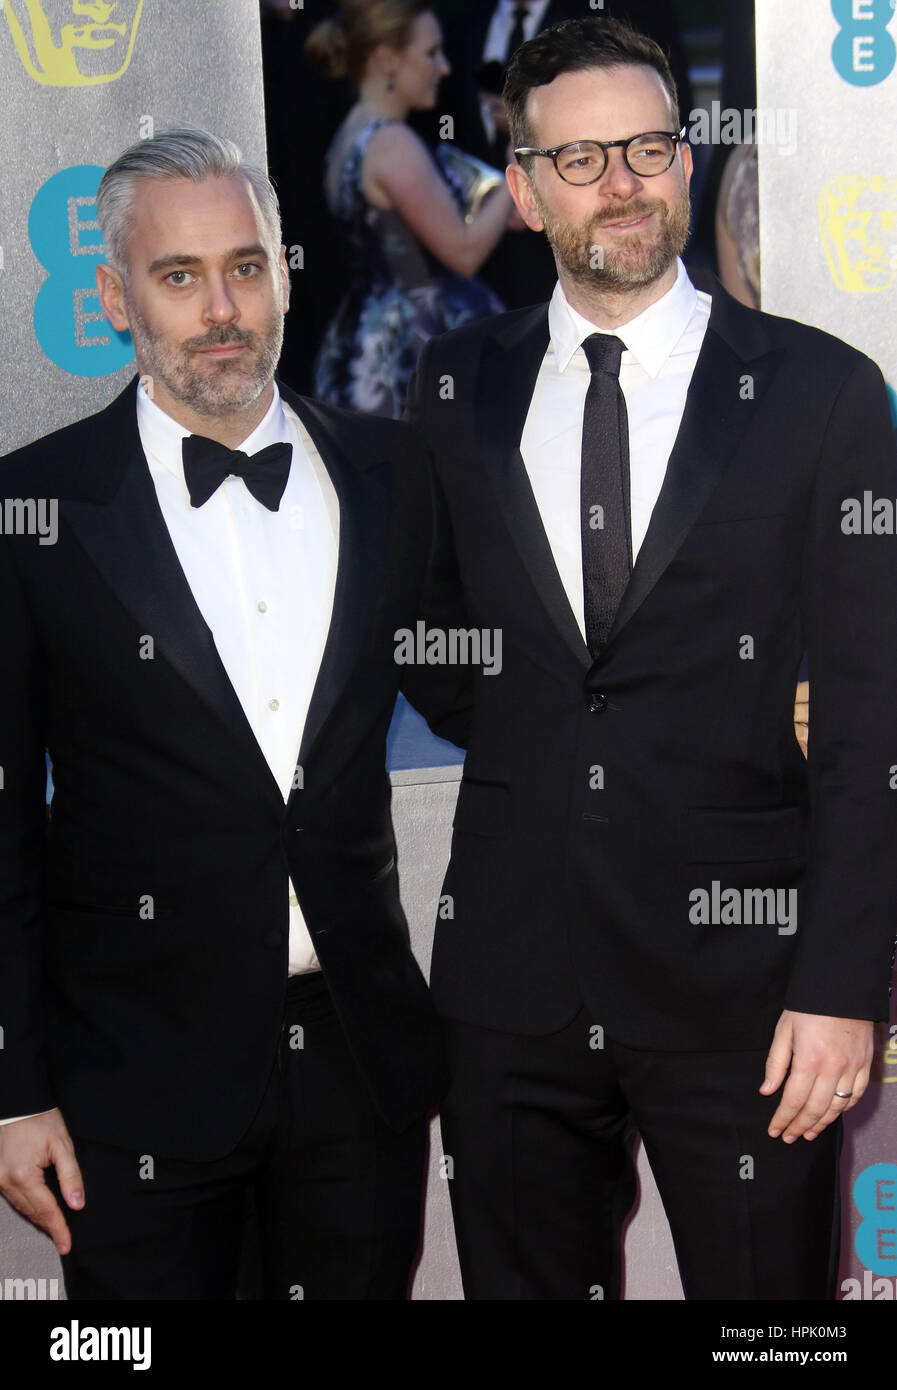 Feb 12, 2017  - Iain Canning attending EE British Academy Film Awards 2017 at Royal Opera House in London, England, - Stock Image